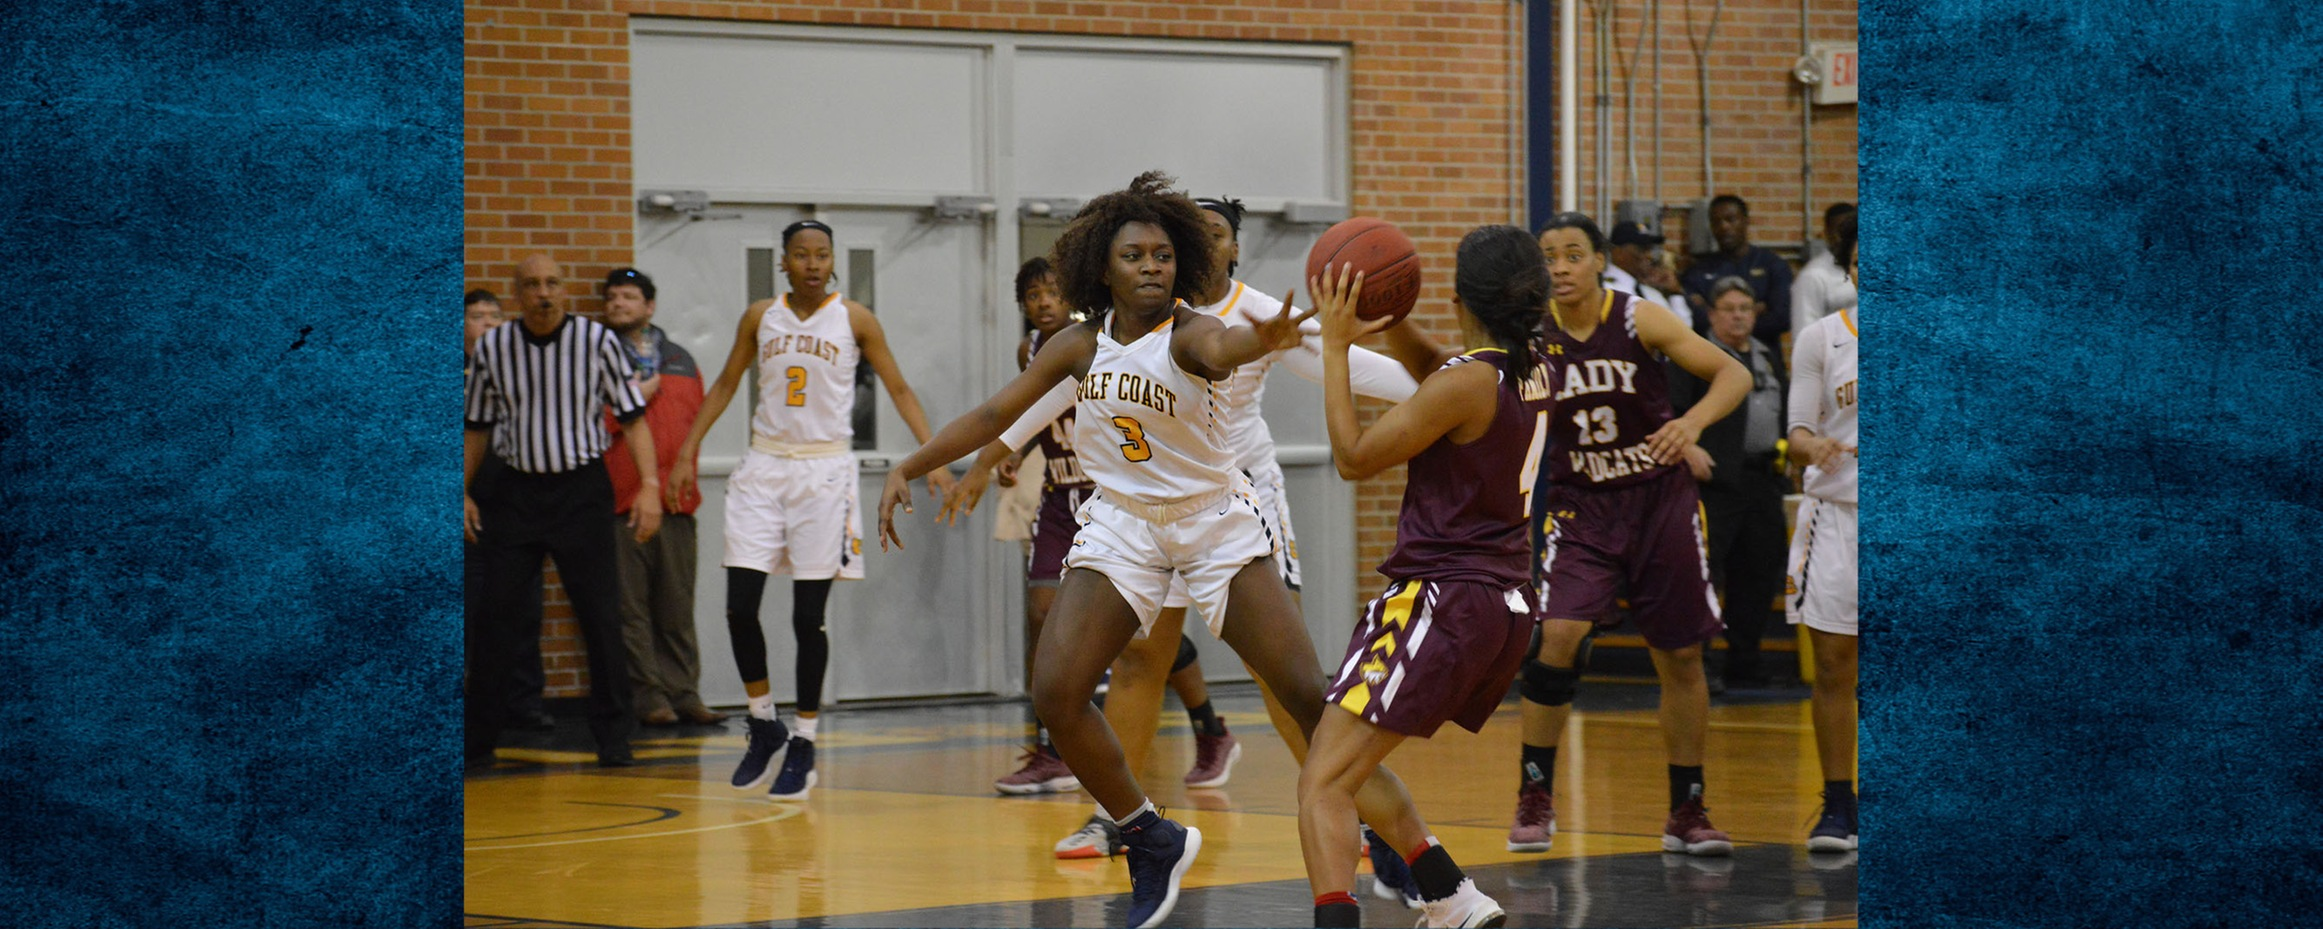 Lady Bulldogs lose to PRCC